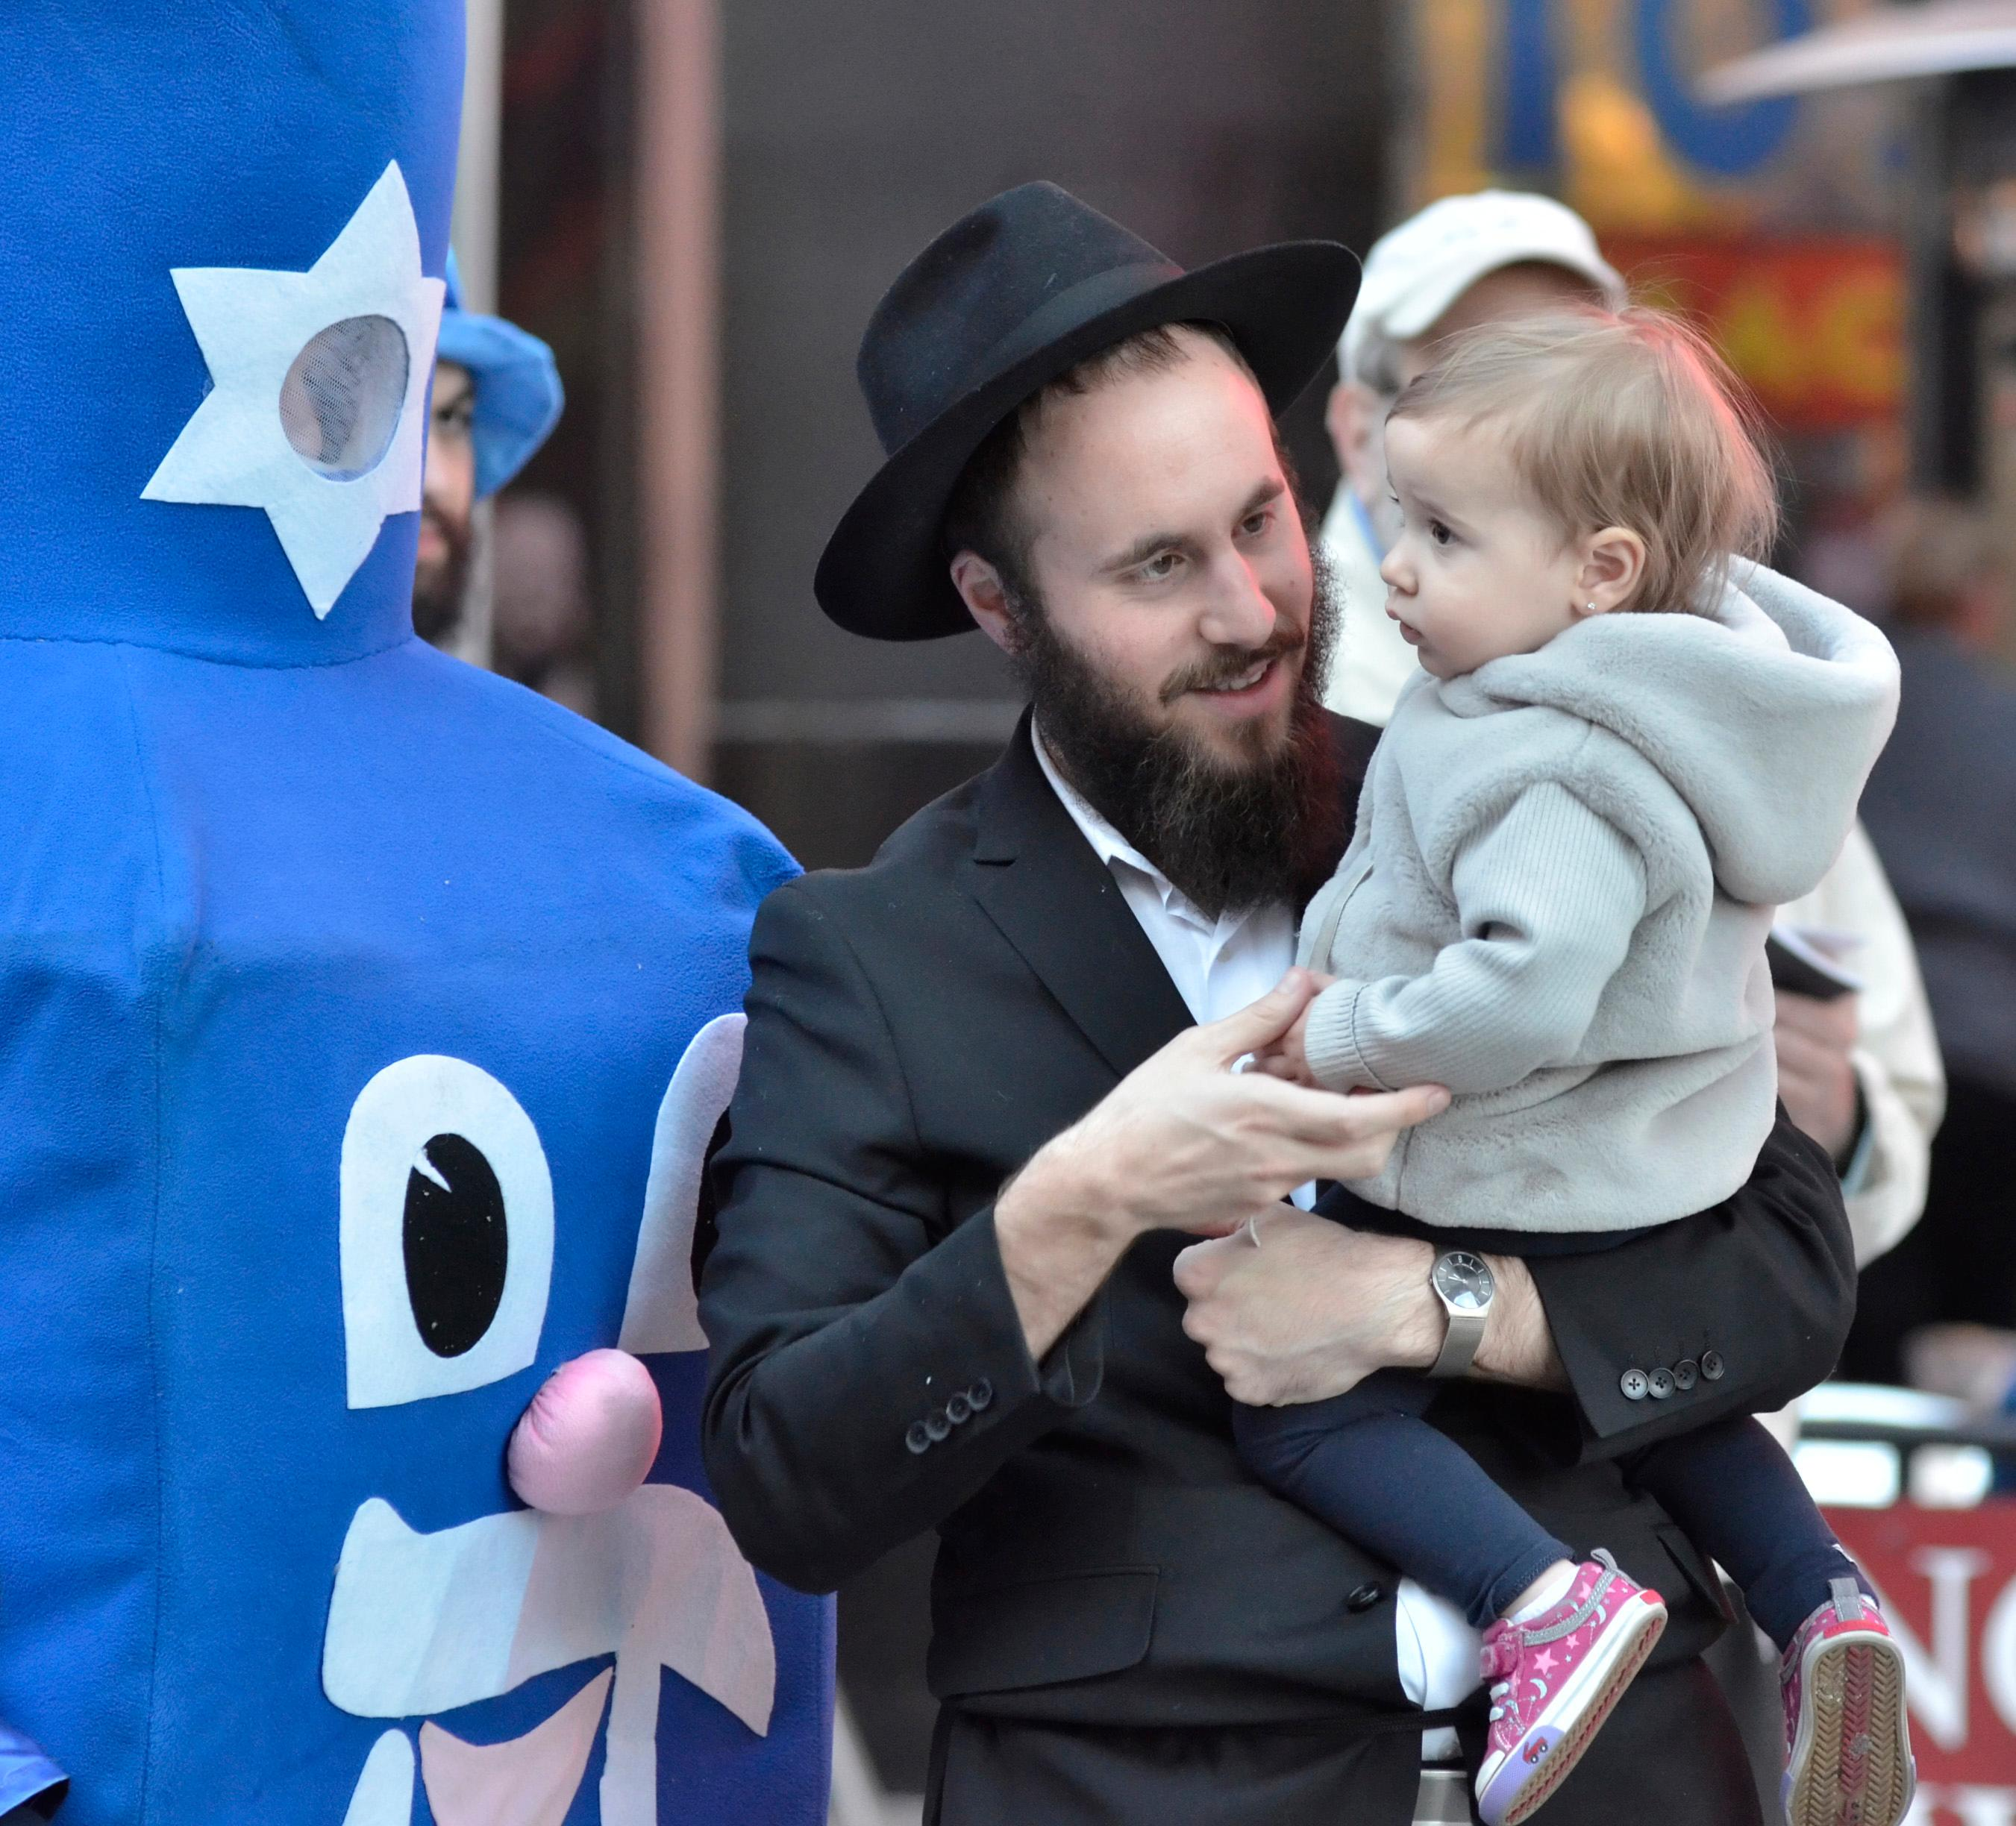 Rabbi Motti Harlig holds his son Rivkie, who is staring at one of the members of the Dancing Dreidels, during a menorah lighting ceremony. Rabbi Shea Harlig, of the Chabad Jewish Center of Southern Nevada, Las Vegas Mayor Carolyn Goodman, Jonathan Jossel, CEO of the Plaza hotel-casino, and Patrick Hughes, President and CEO of Fremont Street Experience, were on hand for the first night of Hanukkah which was marked with the lighting of a 20-foot Grand Menorah on Fremont Street in downtown Las Vegas on Tuesday, Dec. 12, 2017. CREDIT: Bill Hughes/Las Vegas News Bureau